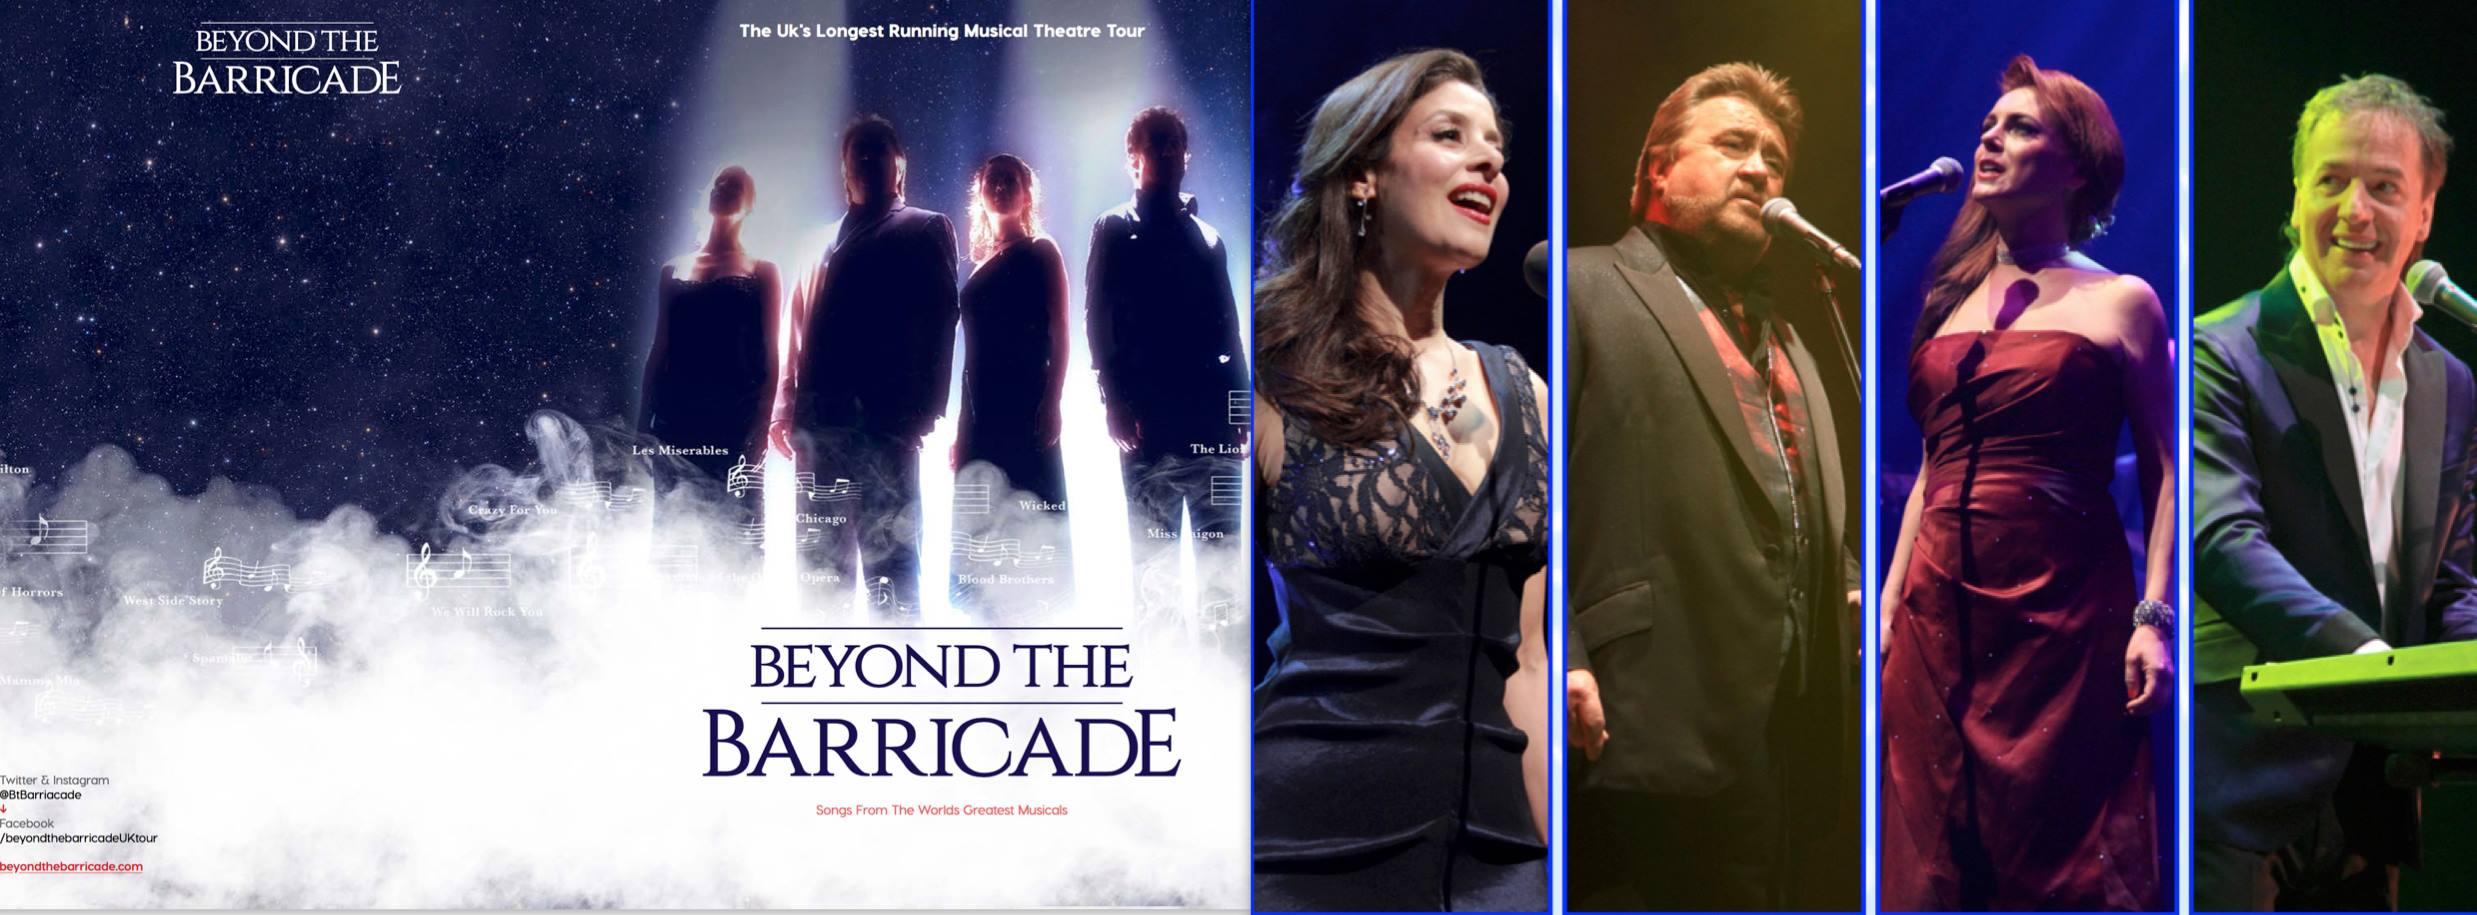 Image of Beyond The Barricade poster